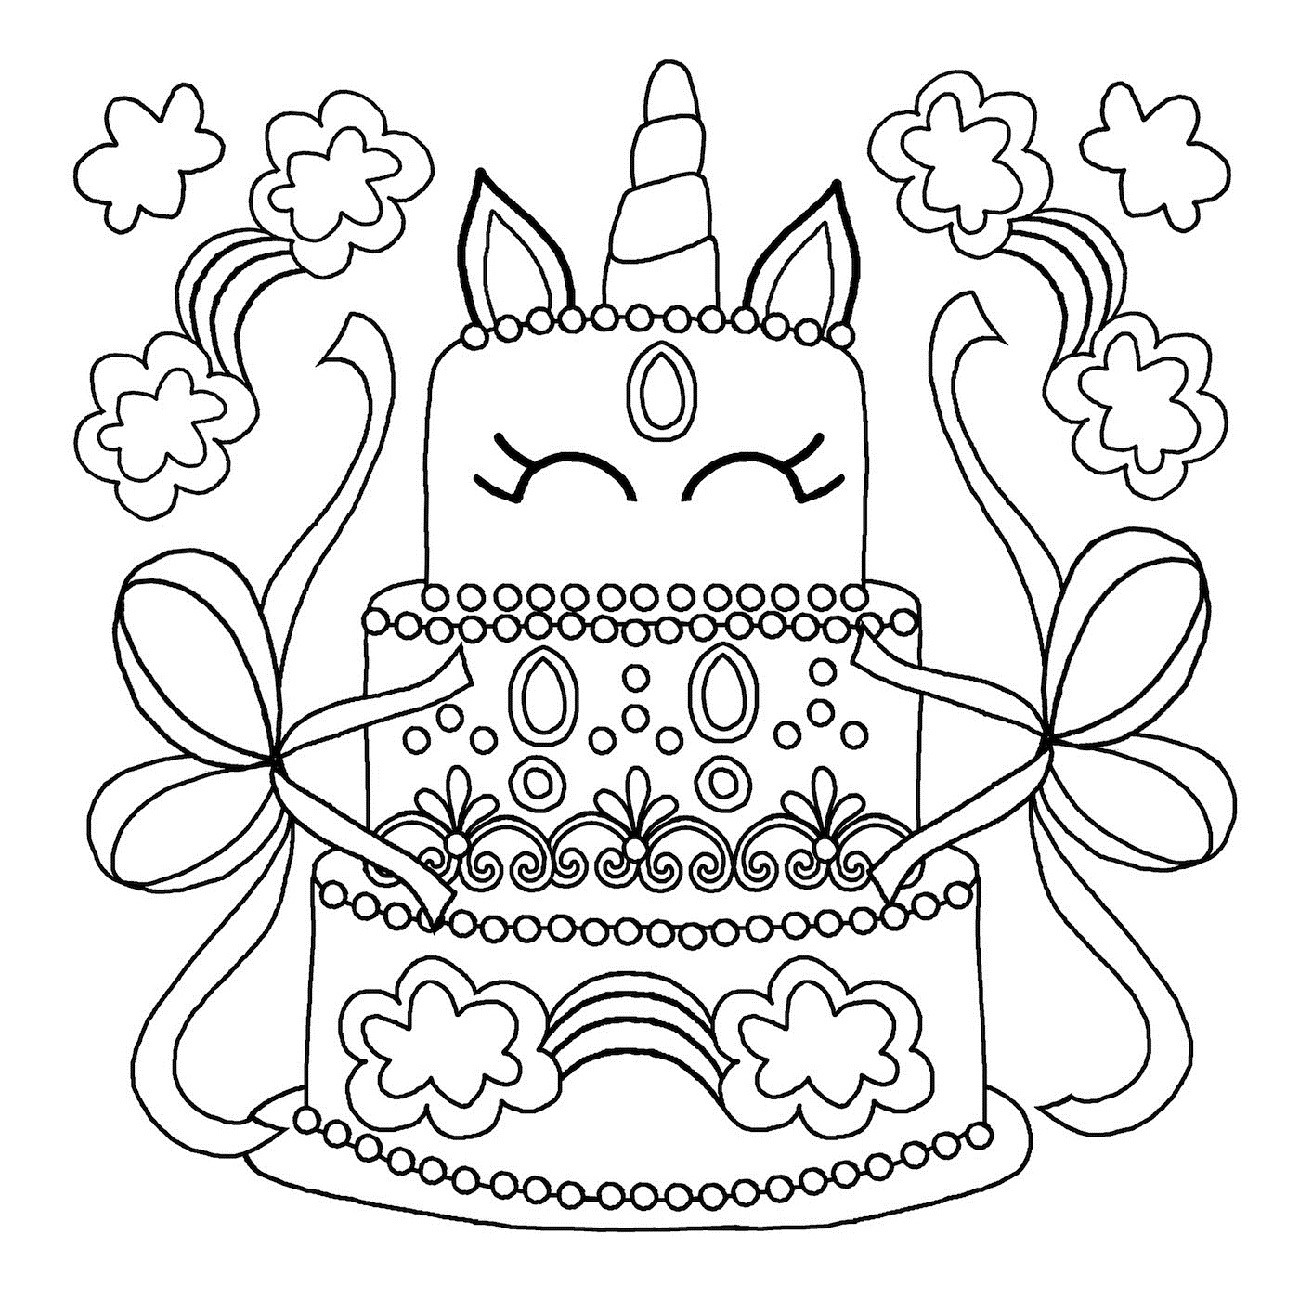 coloring cake for kids birthday cake coloring pages printable 101 coloring cake for coloring kids